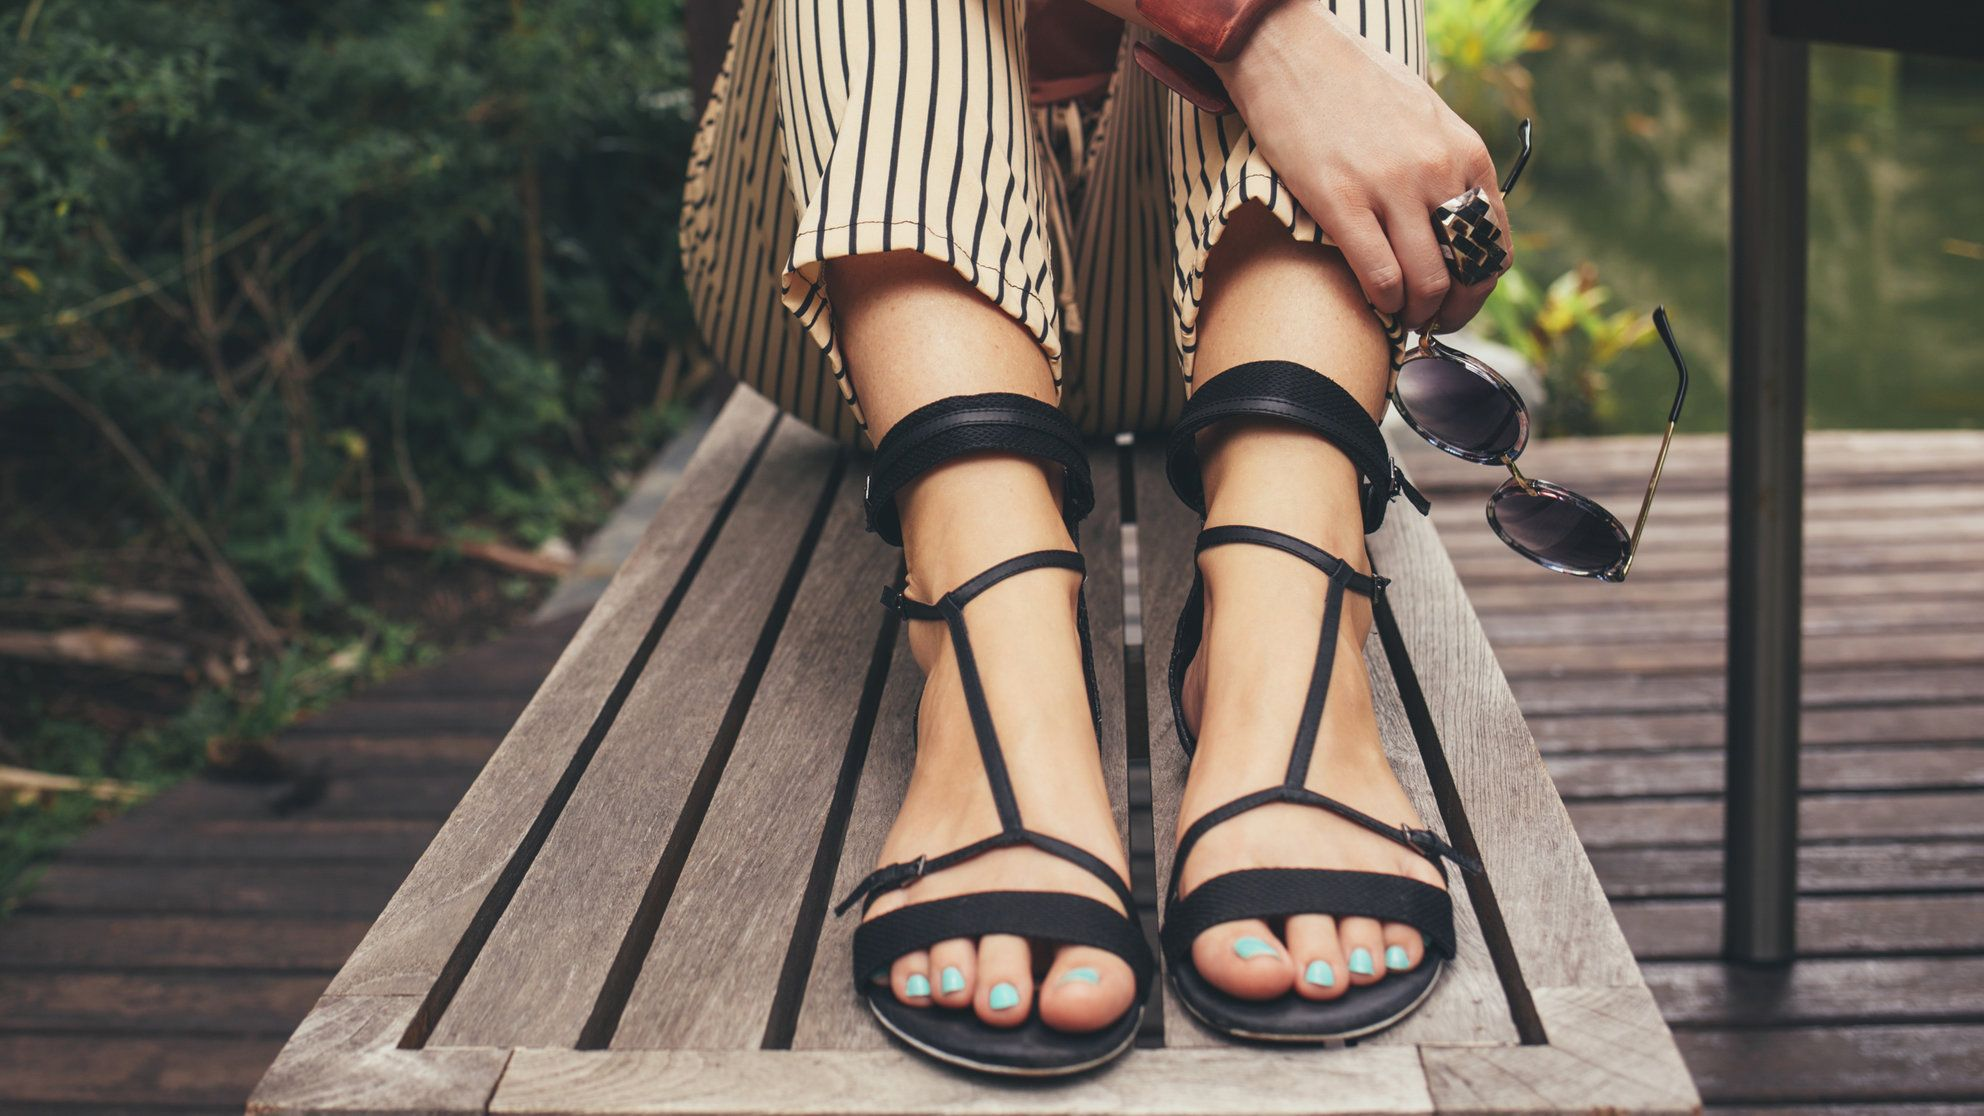 e26bd24730 The Best Sandals for Your Feet, According to Podiatrists | Style ...